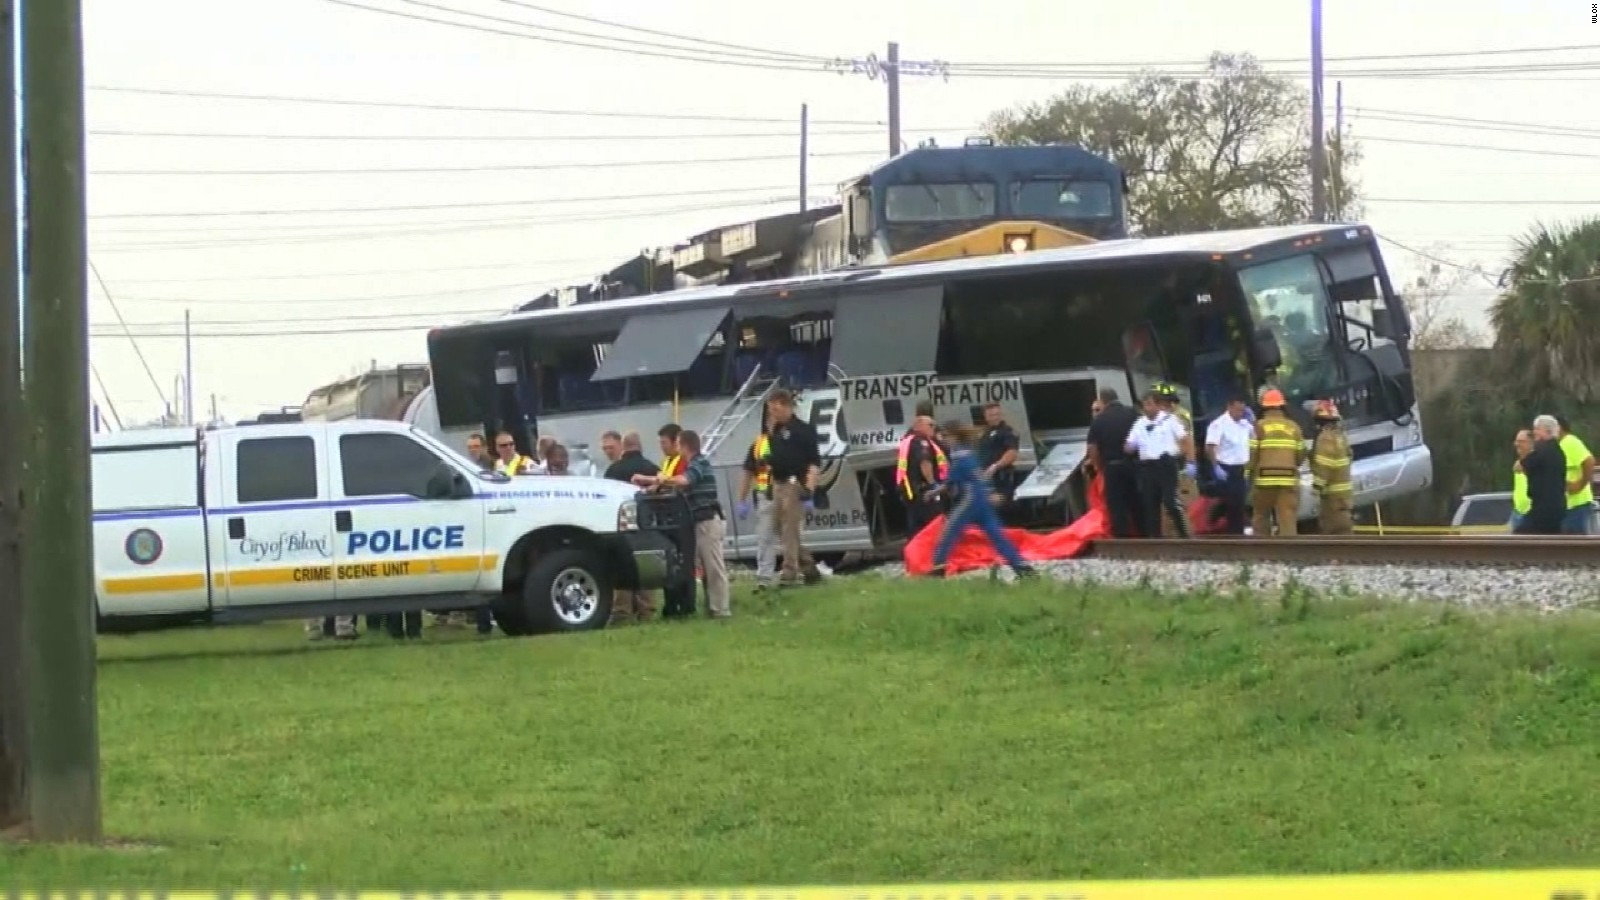 At least 4 dead after freight train hits bus